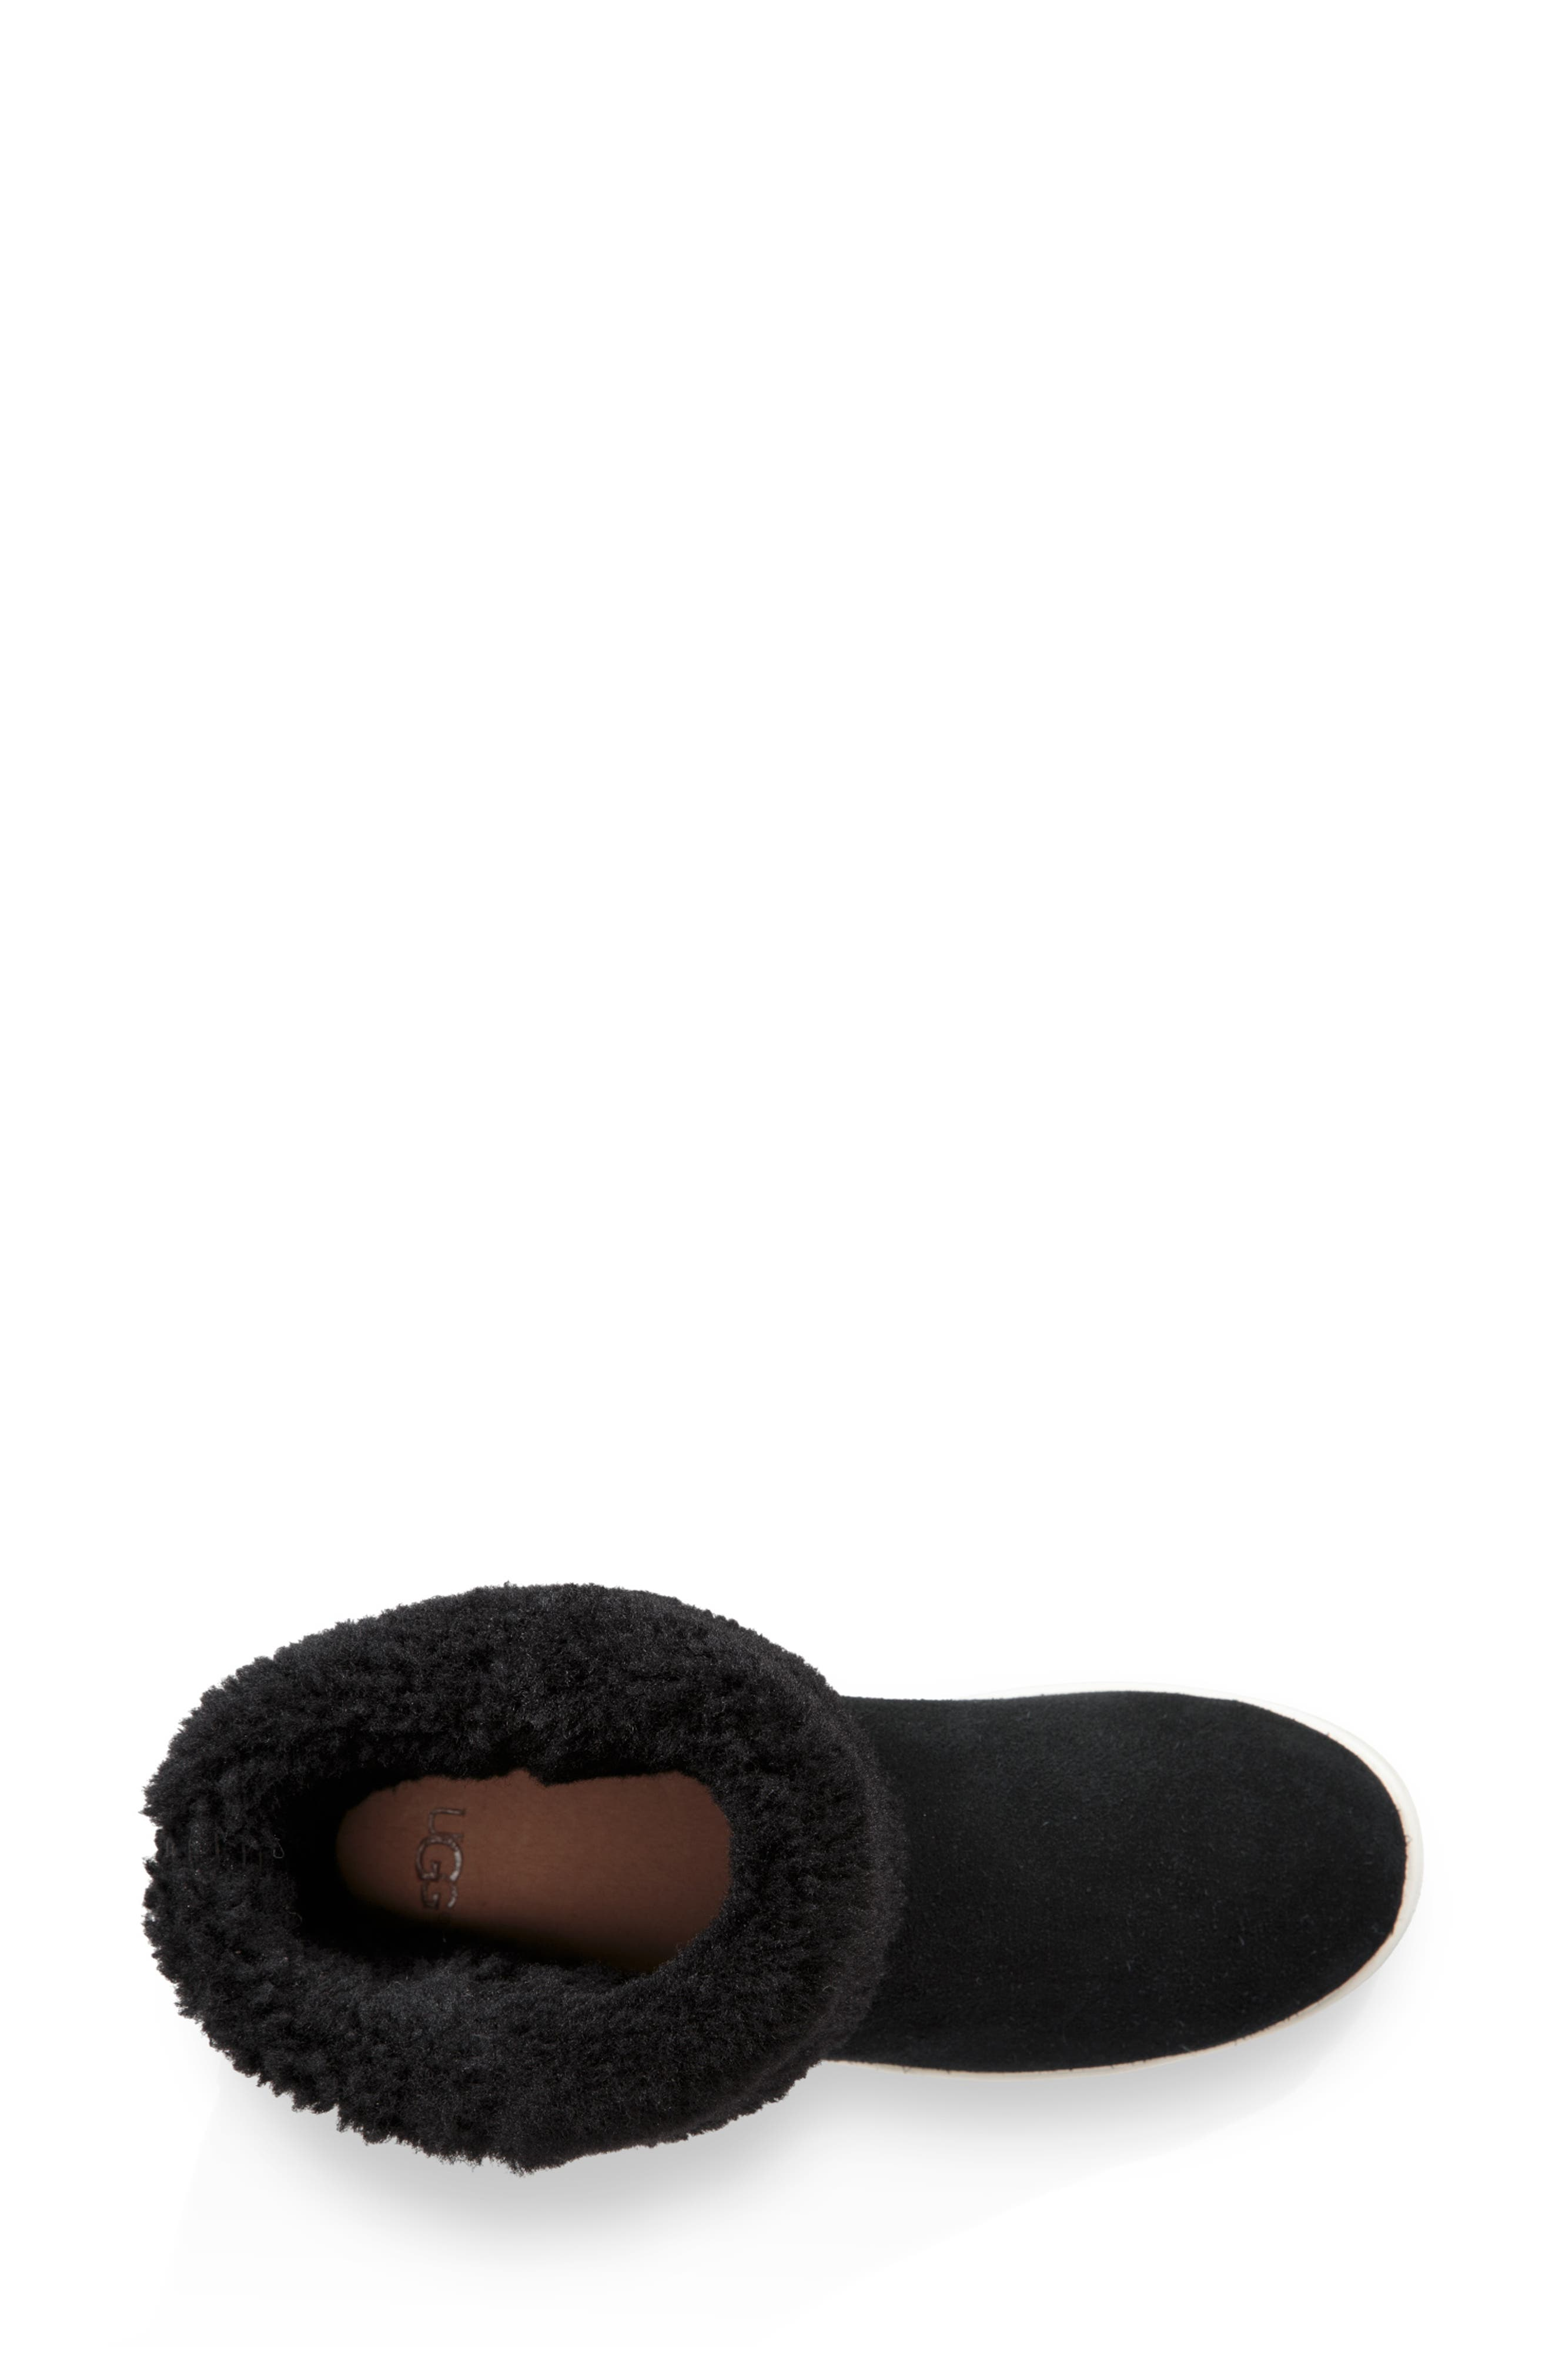 UGG<SUP>®</SUP>, Mika Classic Genuine Shearling Sneaker, Alternate thumbnail 5, color, BLACK